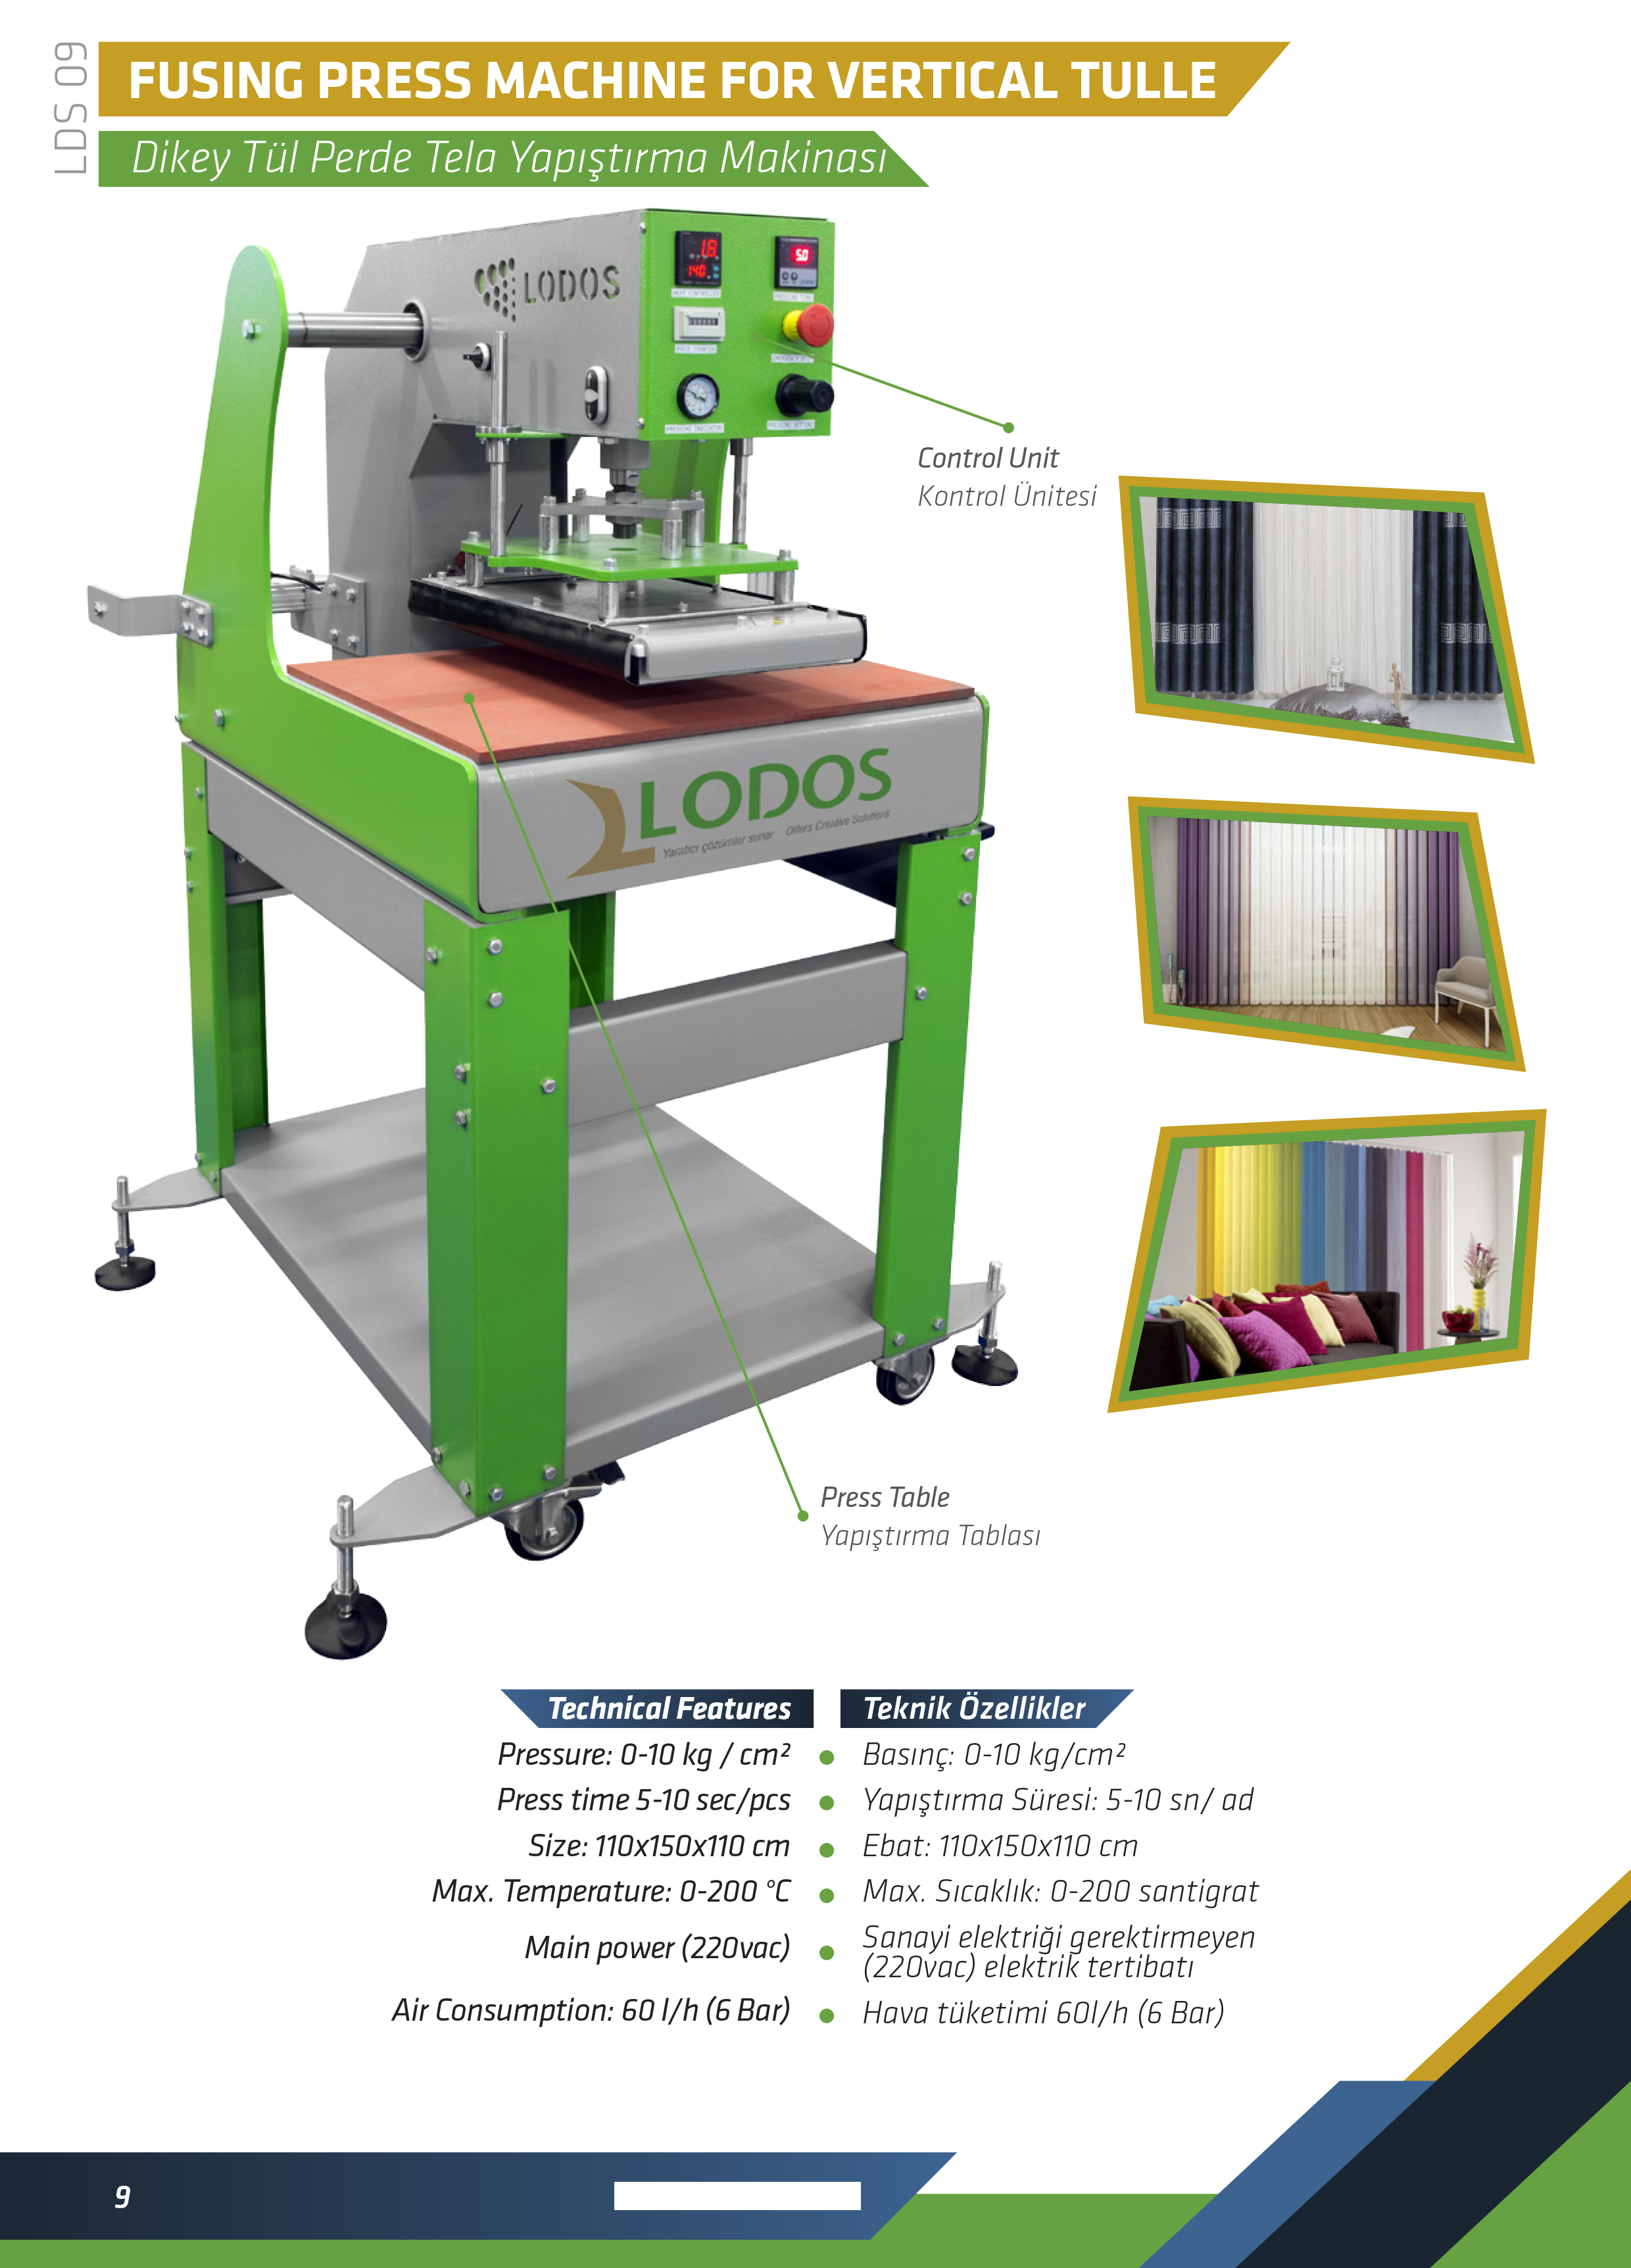 FUSING PRESS MACHINE FOR VERTICAL TULLE